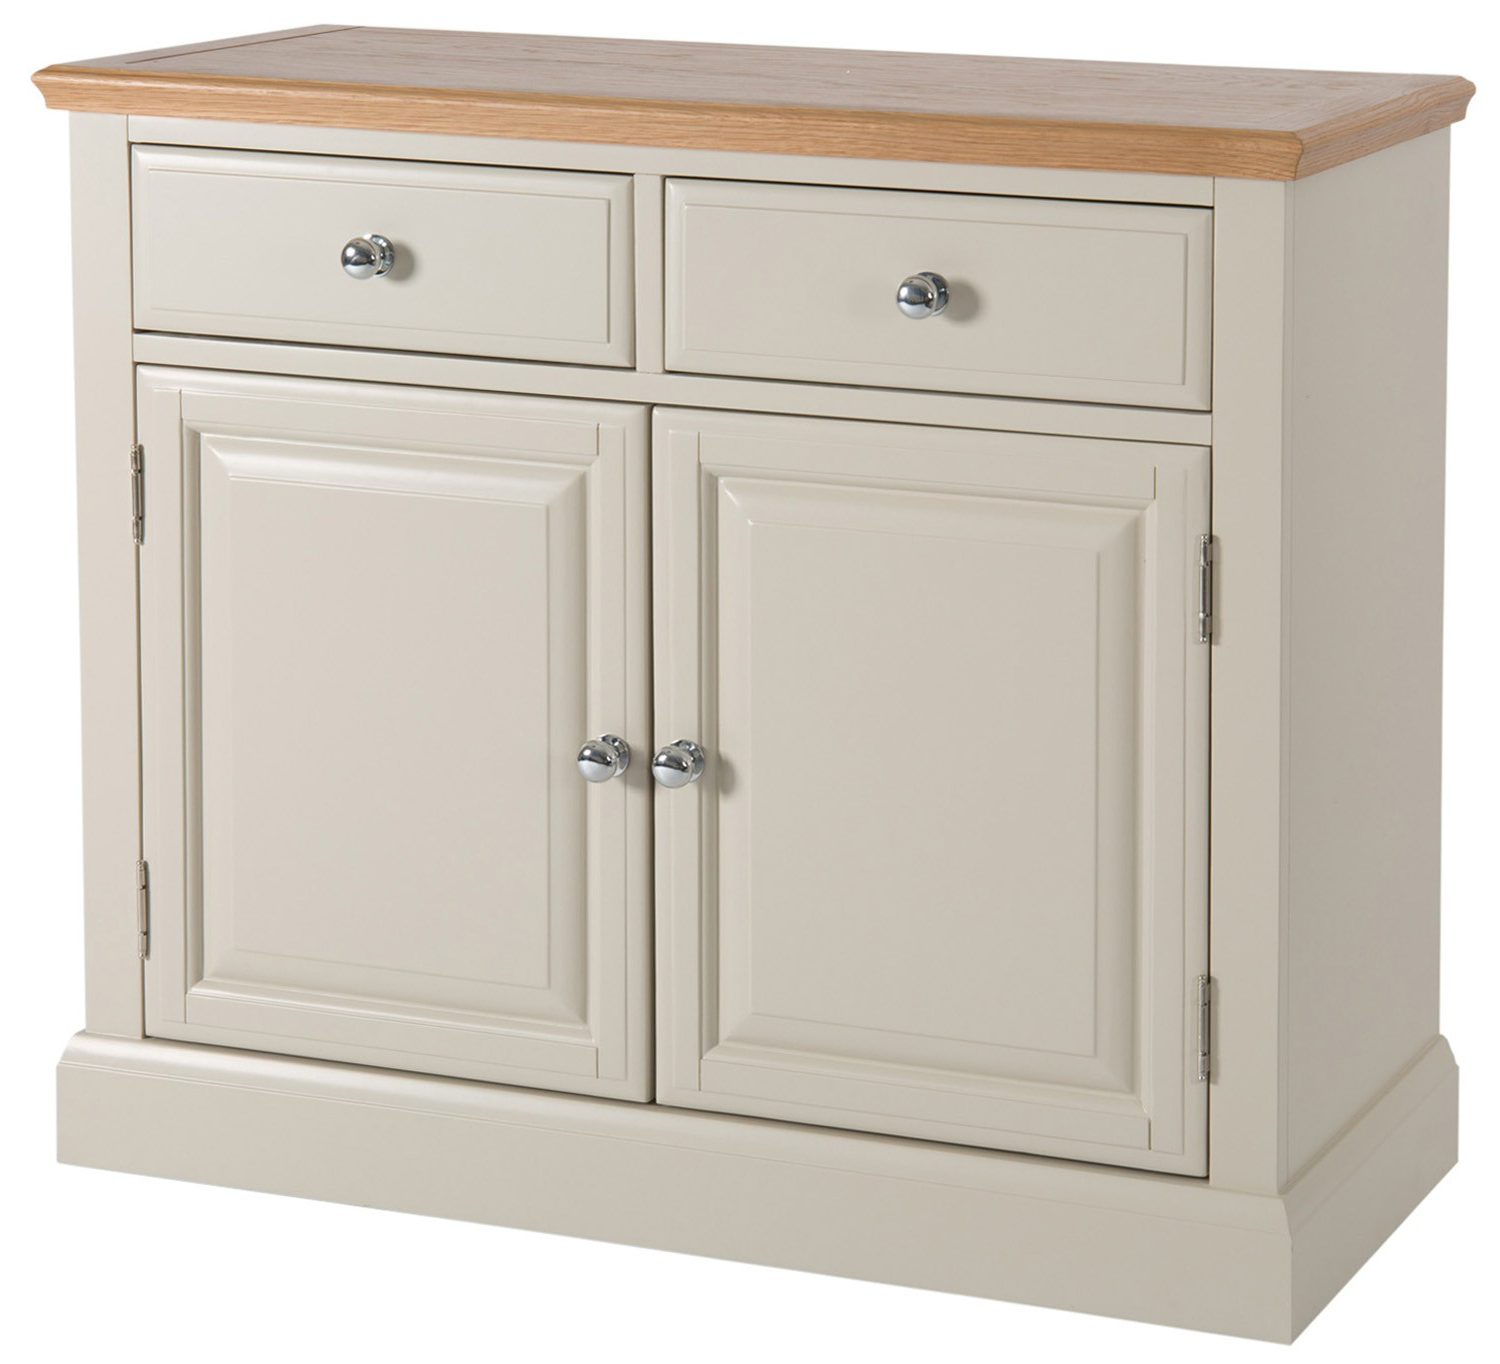 Donington 2 Drawer 2 Door Sideboard – Sideboards & Tops Regarding Norton Sideboards (View 20 of 20)